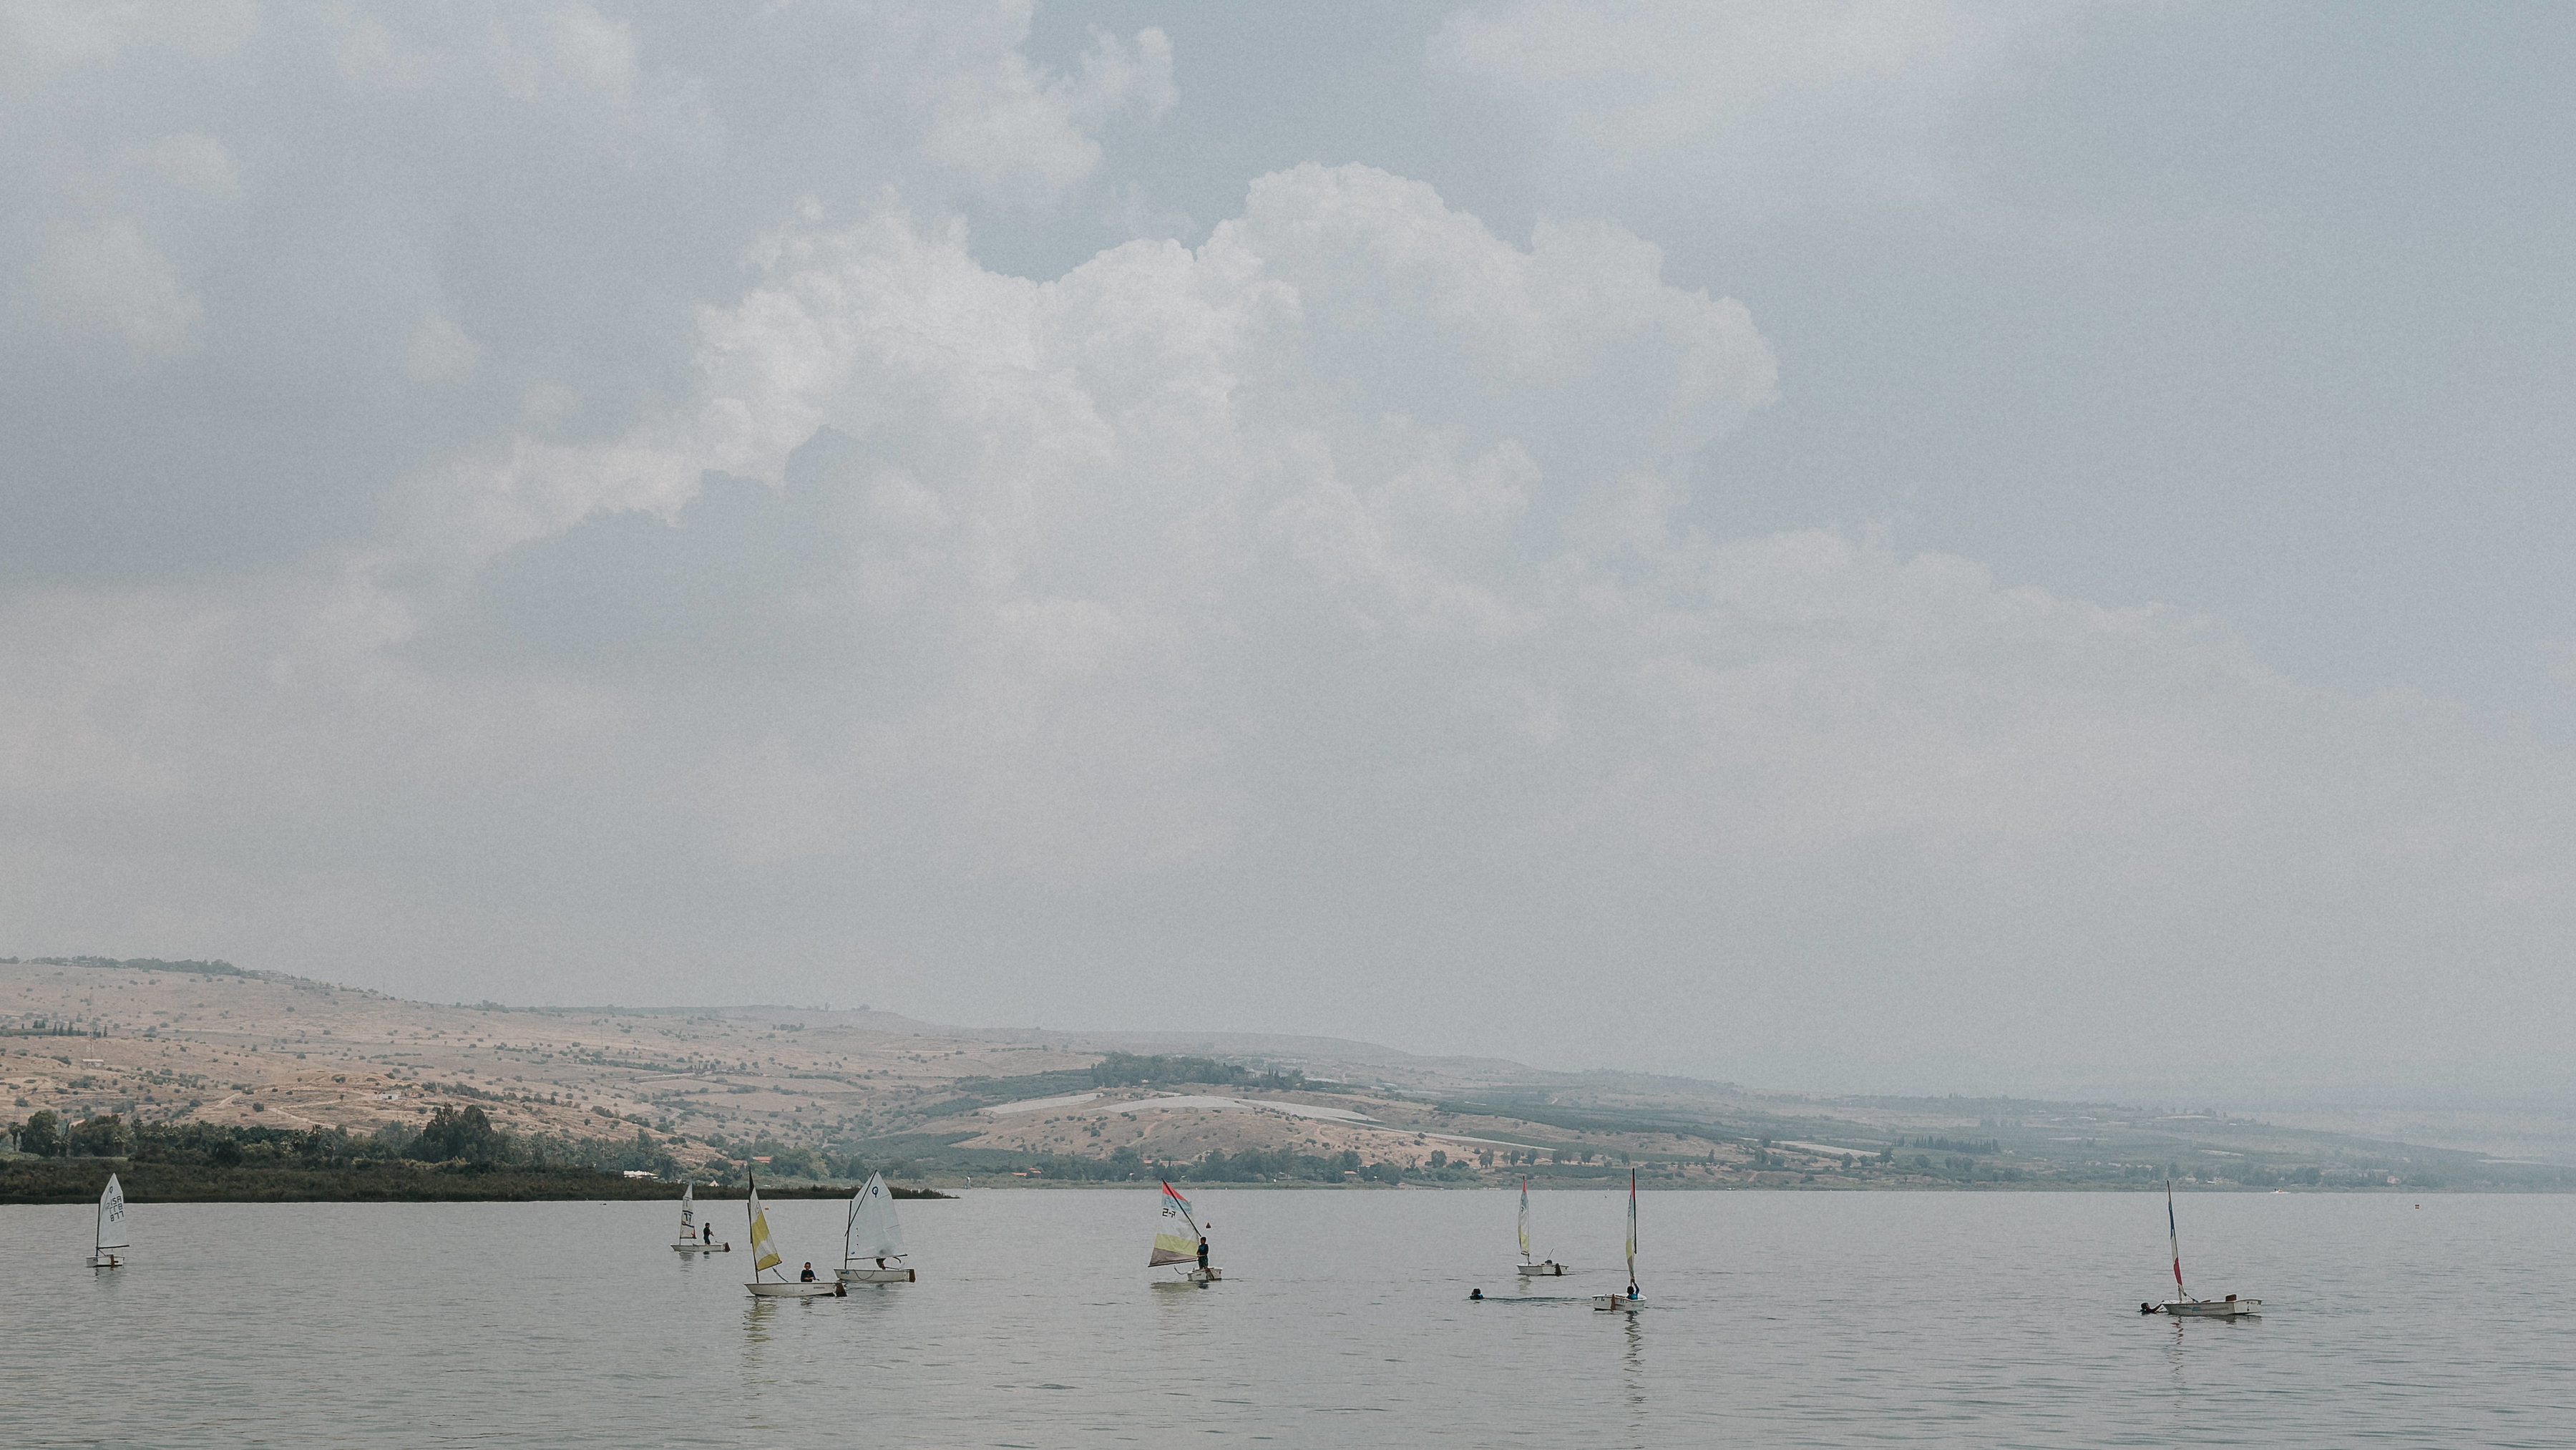 As we stepped onto our Galilean sea-cruise, we noticed these small one-man sailboats. If you look closely, it looks like a class learning to sail!